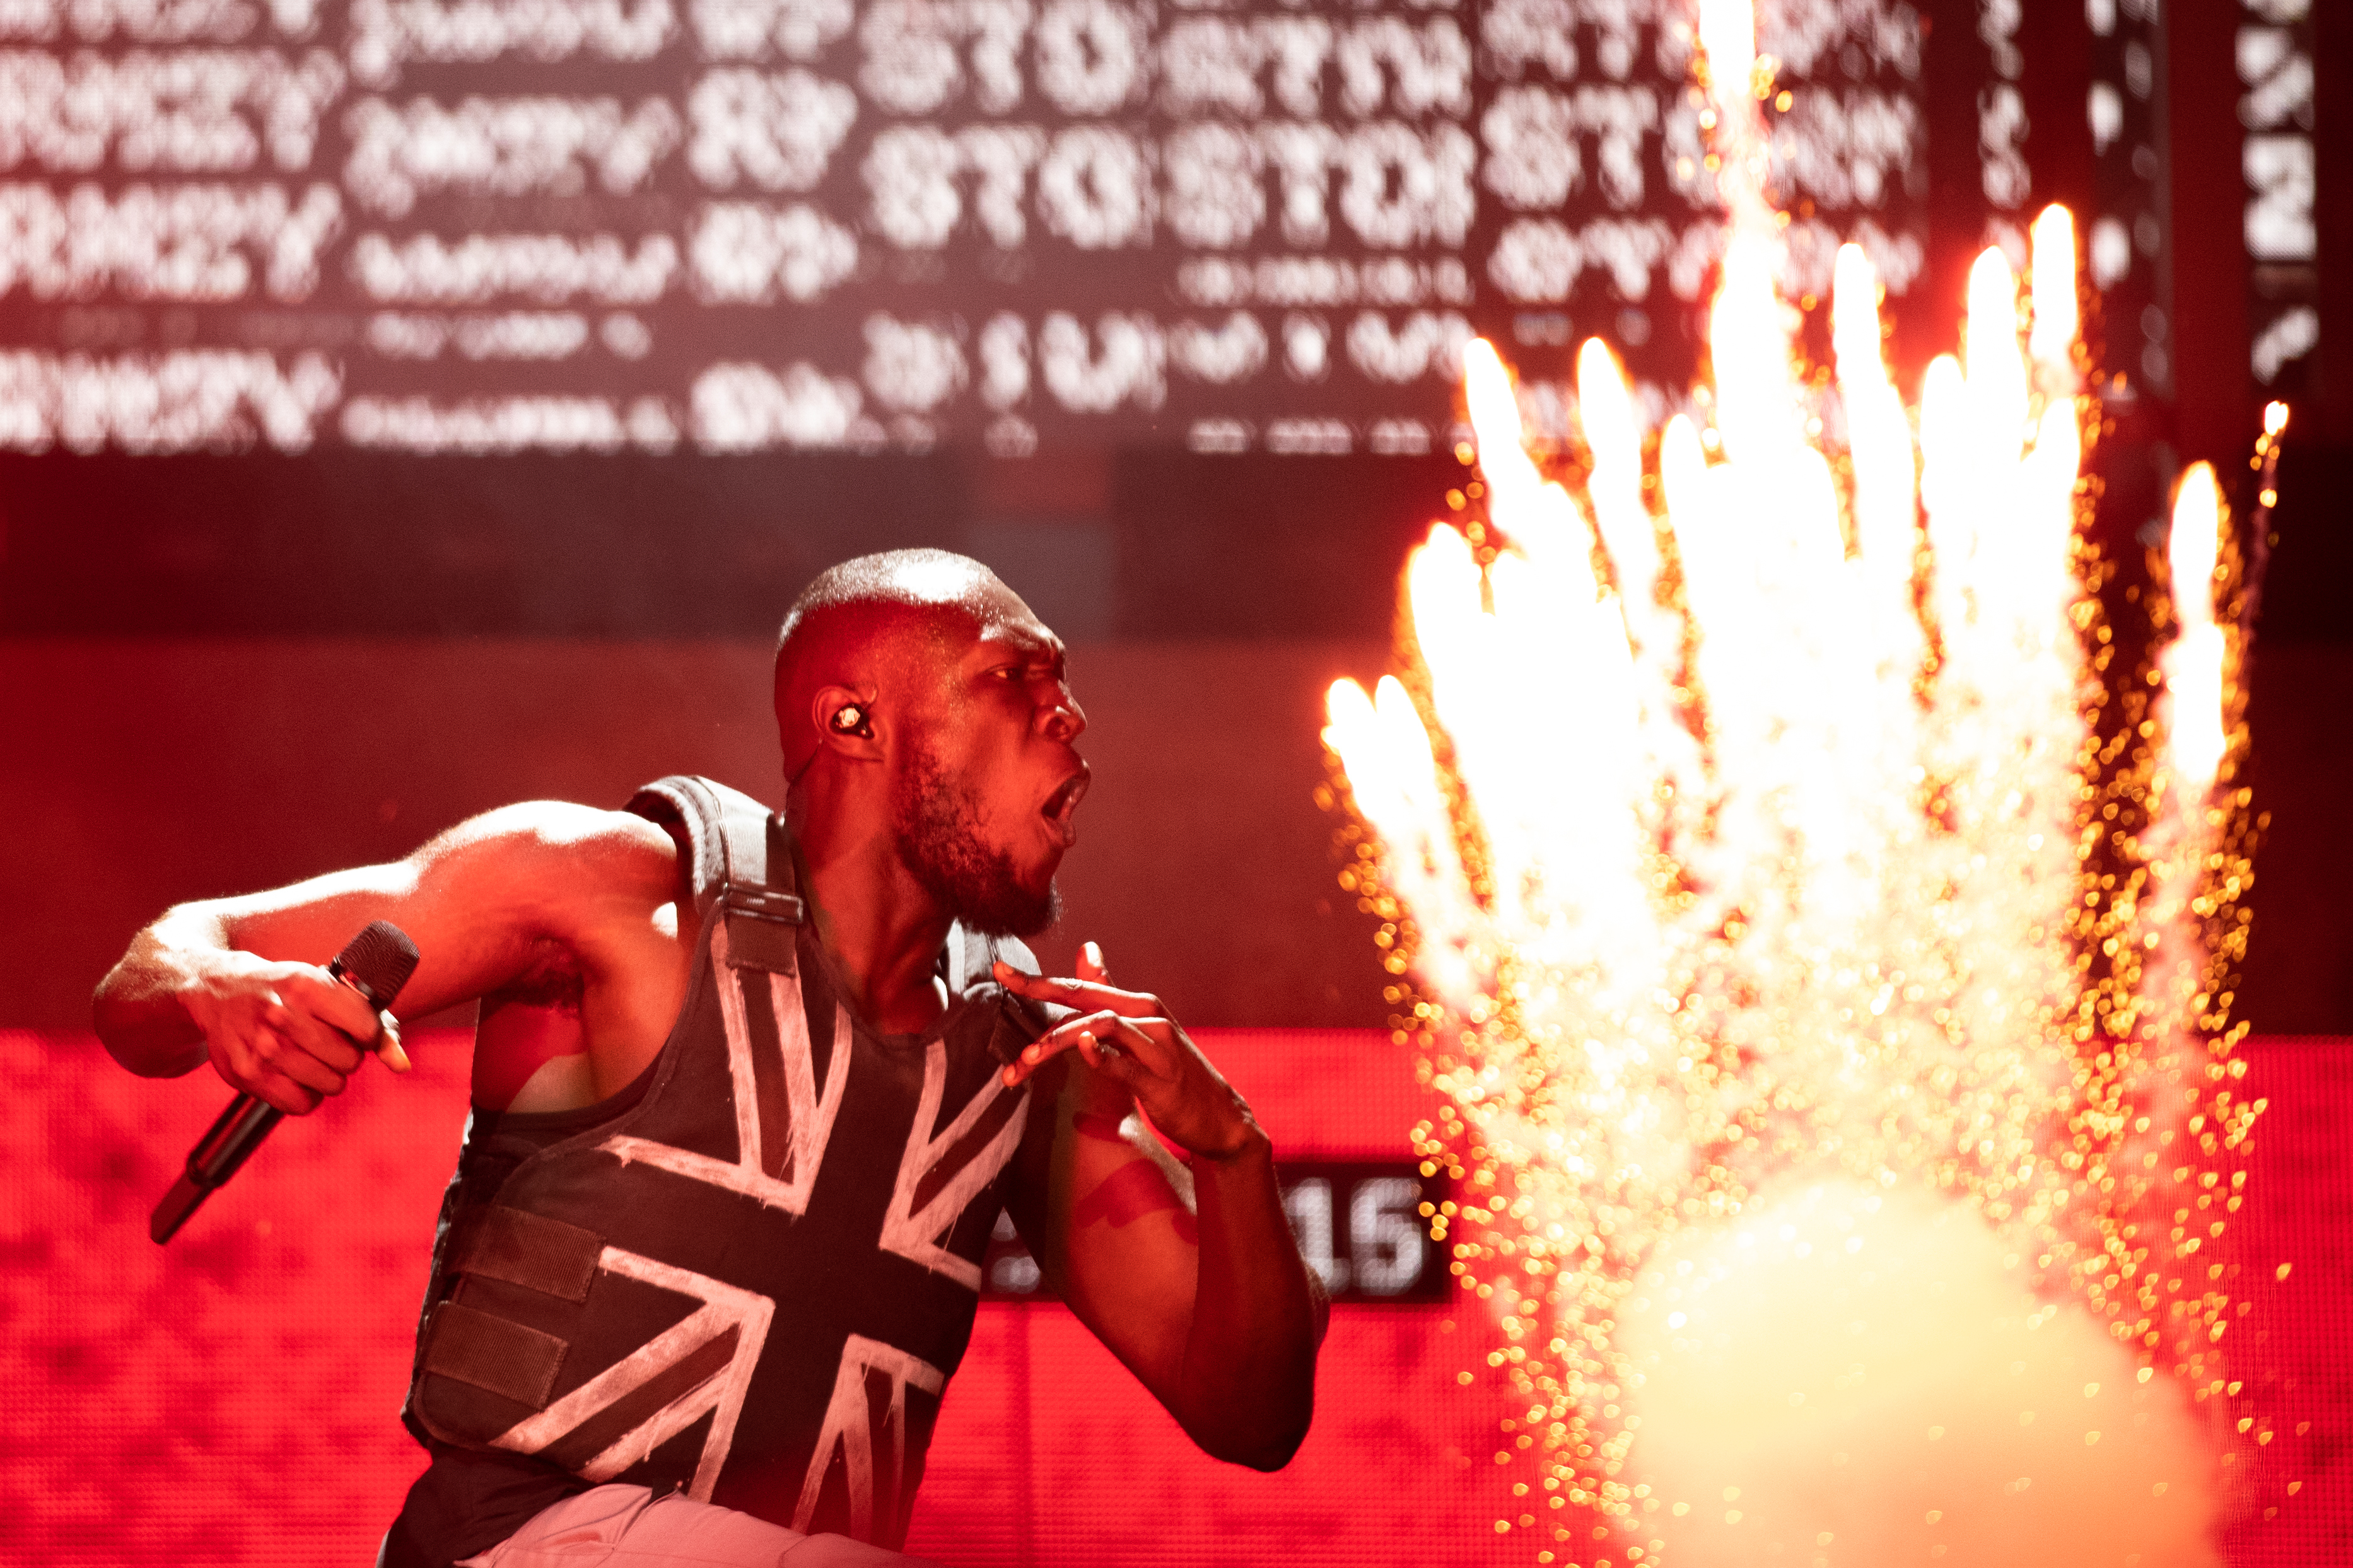 Stormzy performing on the Pyramid Stage during the Glastonbury Festival at Worthy Farm in Pilton, Somerset.